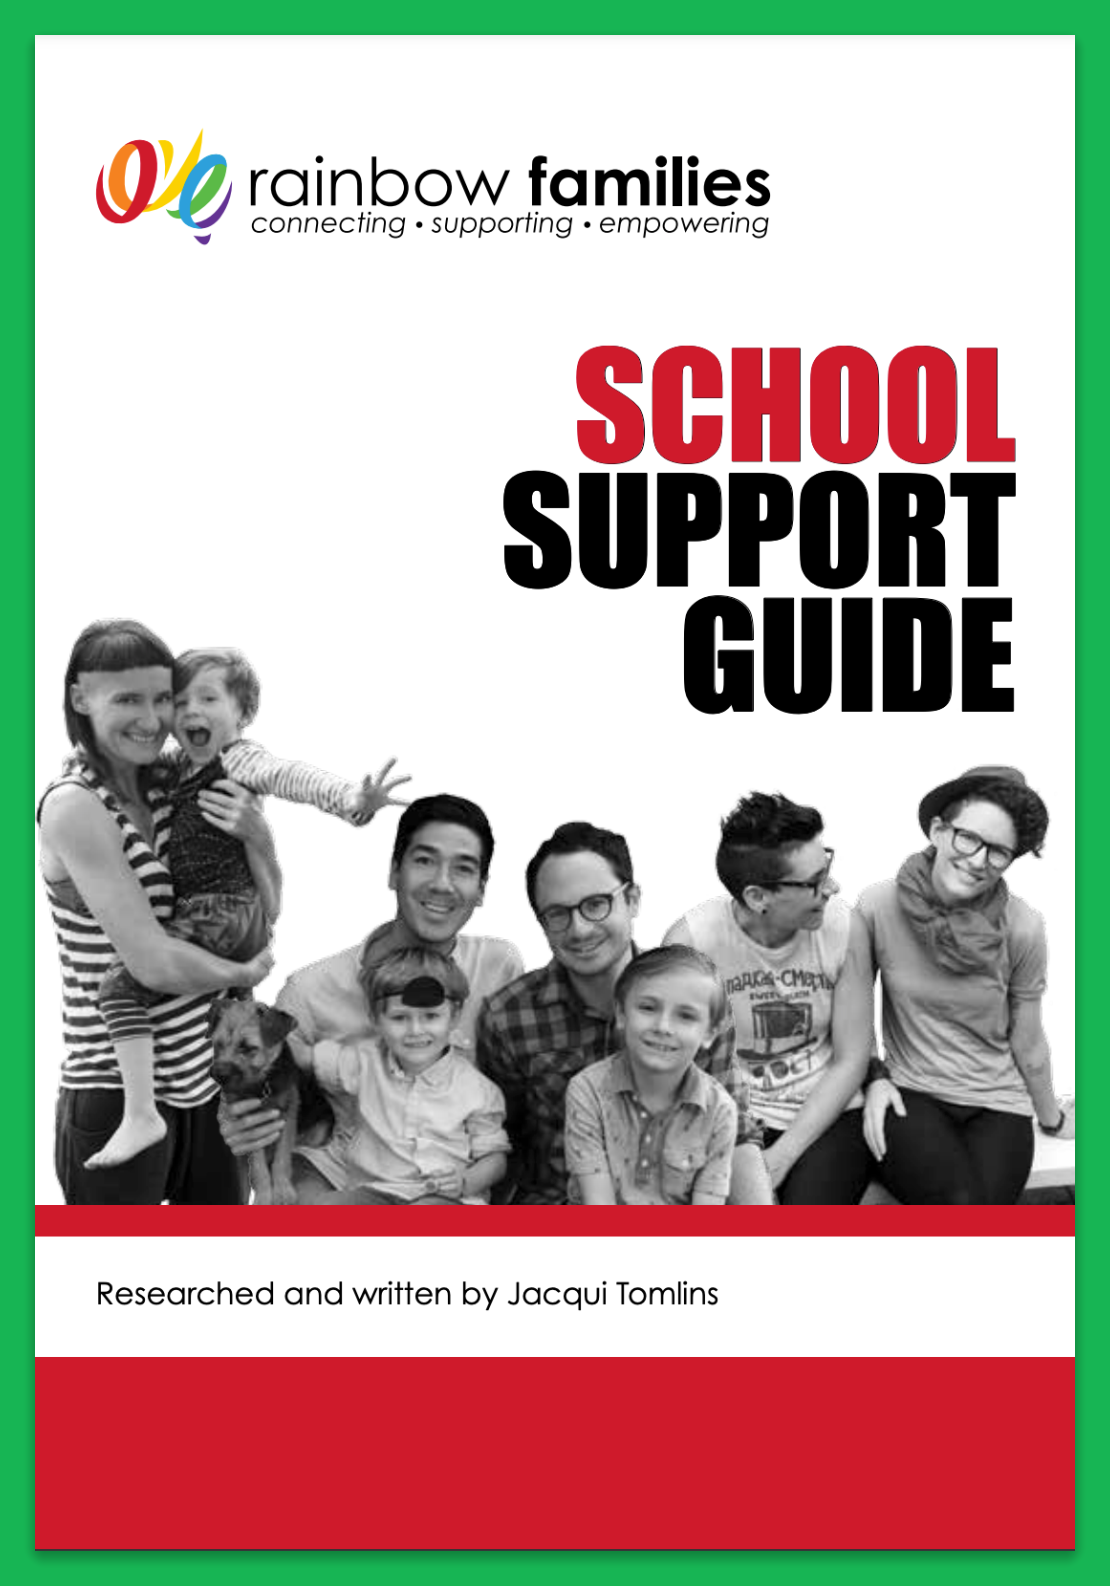 Resources_families_schoolsupport_2.png